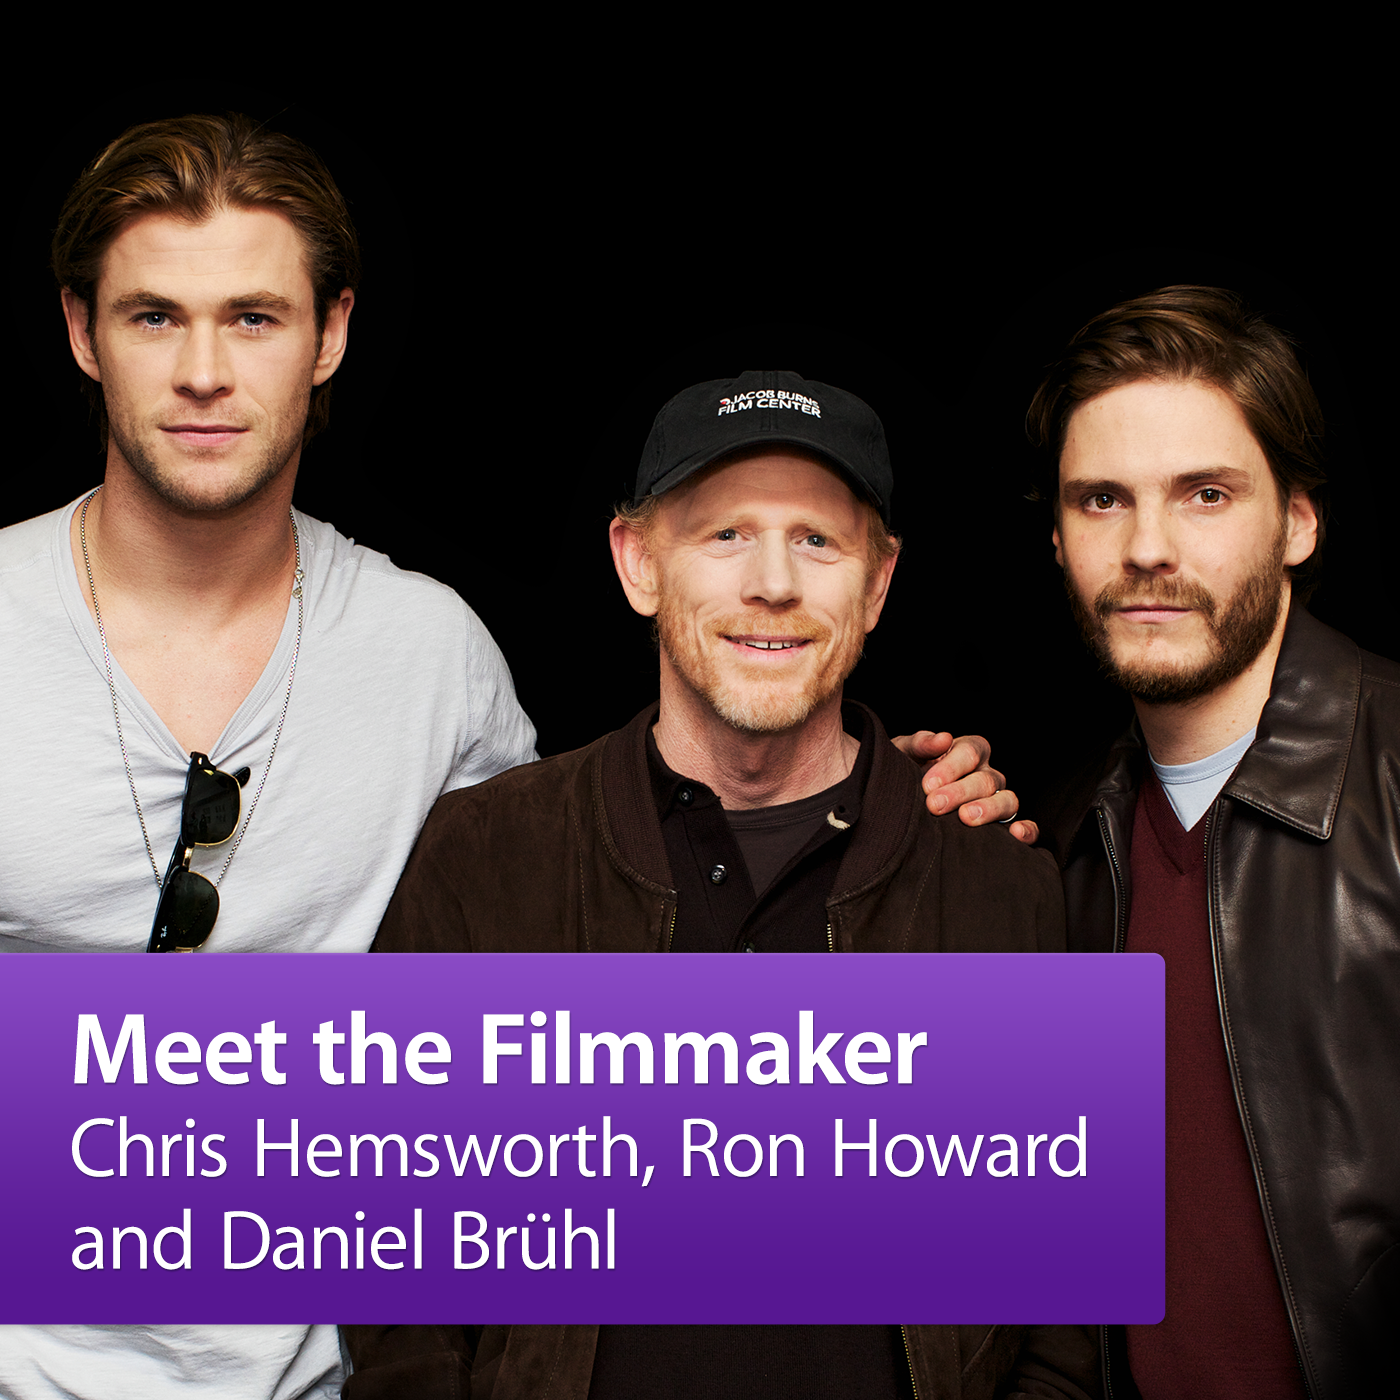 Ron Howard, Chris Hemsworth and Daniel Brühl: Meet the Filmmakers